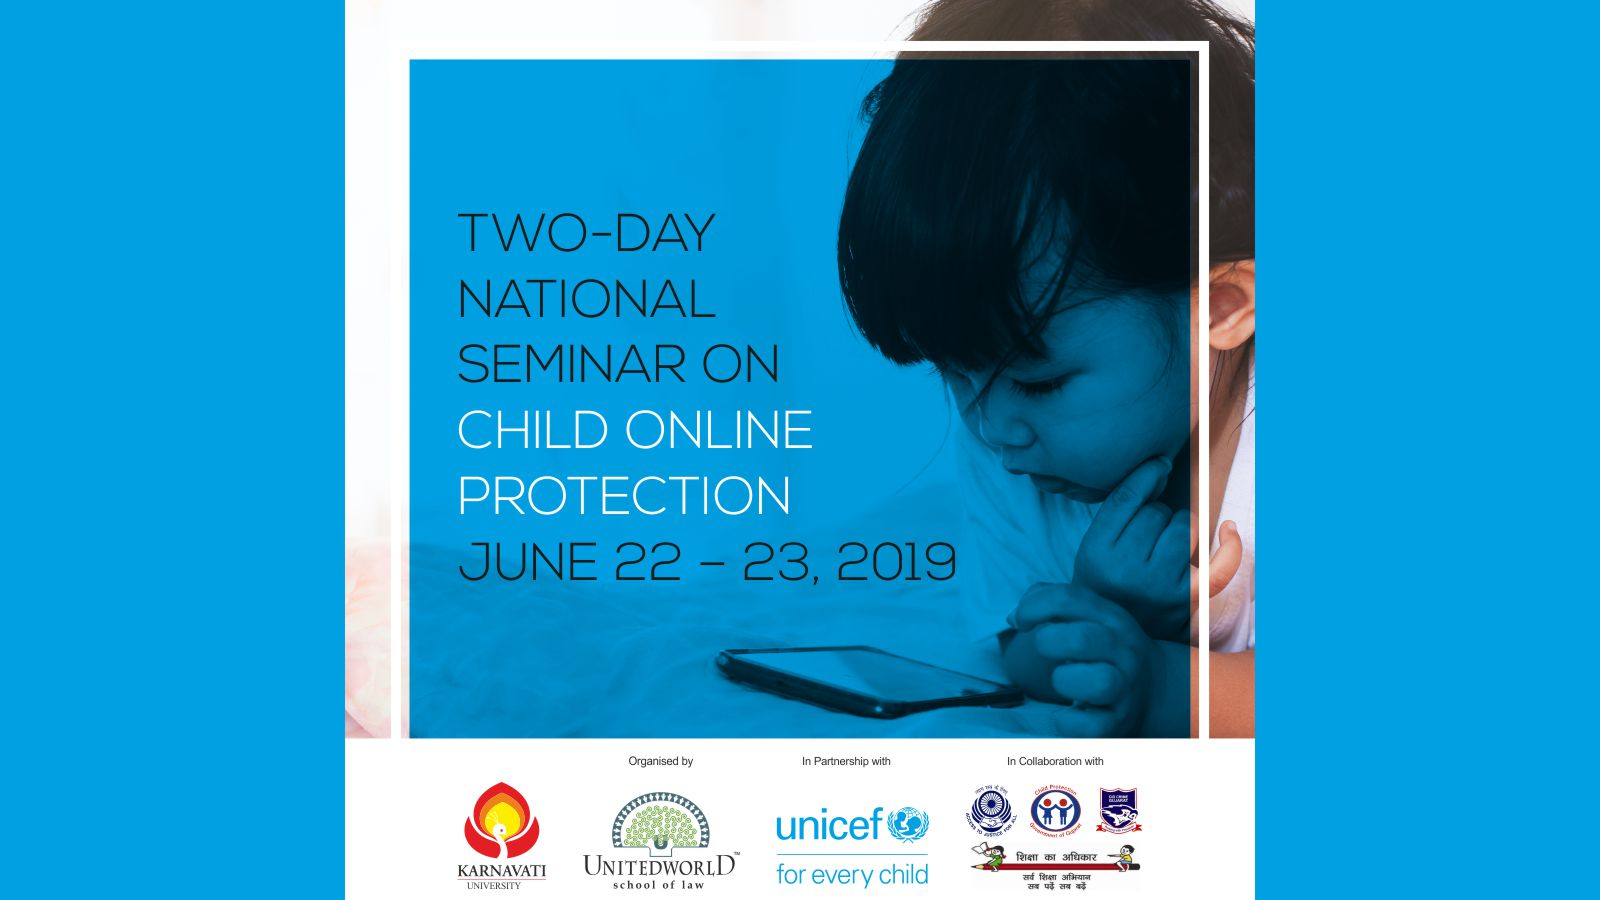 Two-Day National Seminar on Child Online Protection Image